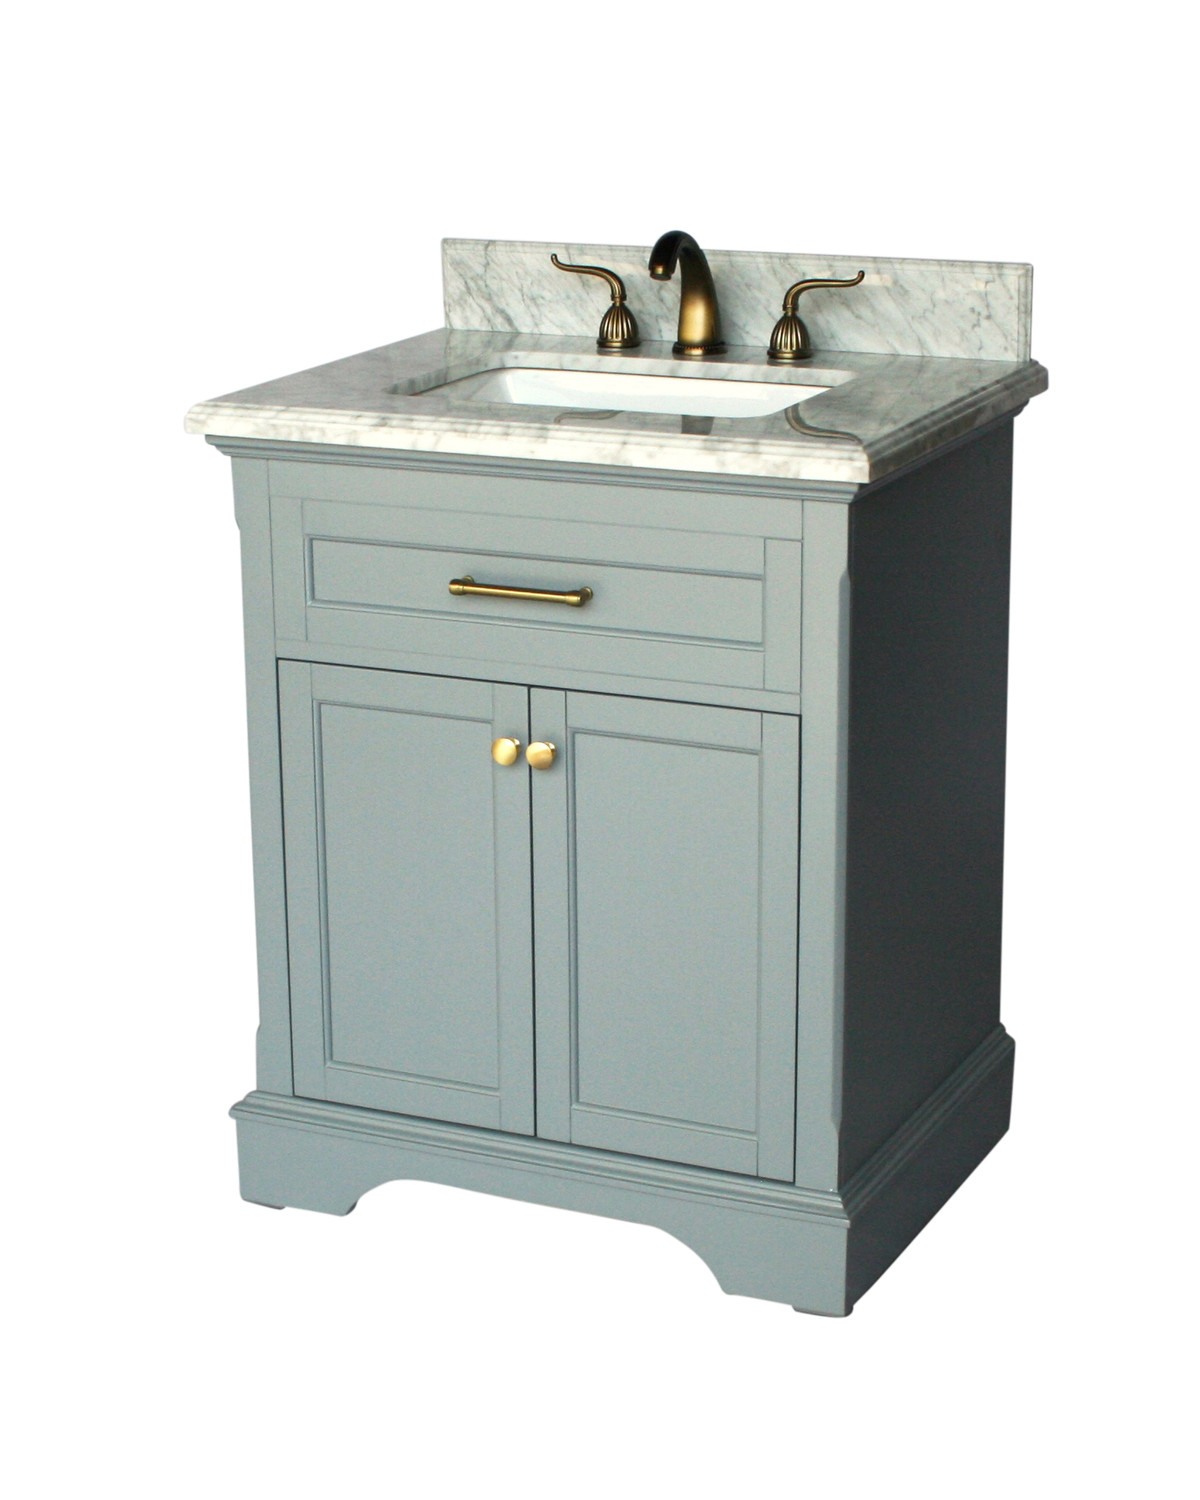 "28"" Adelina Contemporary Single Sink Bathroom Vanity Italian Carrara Marble Top in Grey Finish"